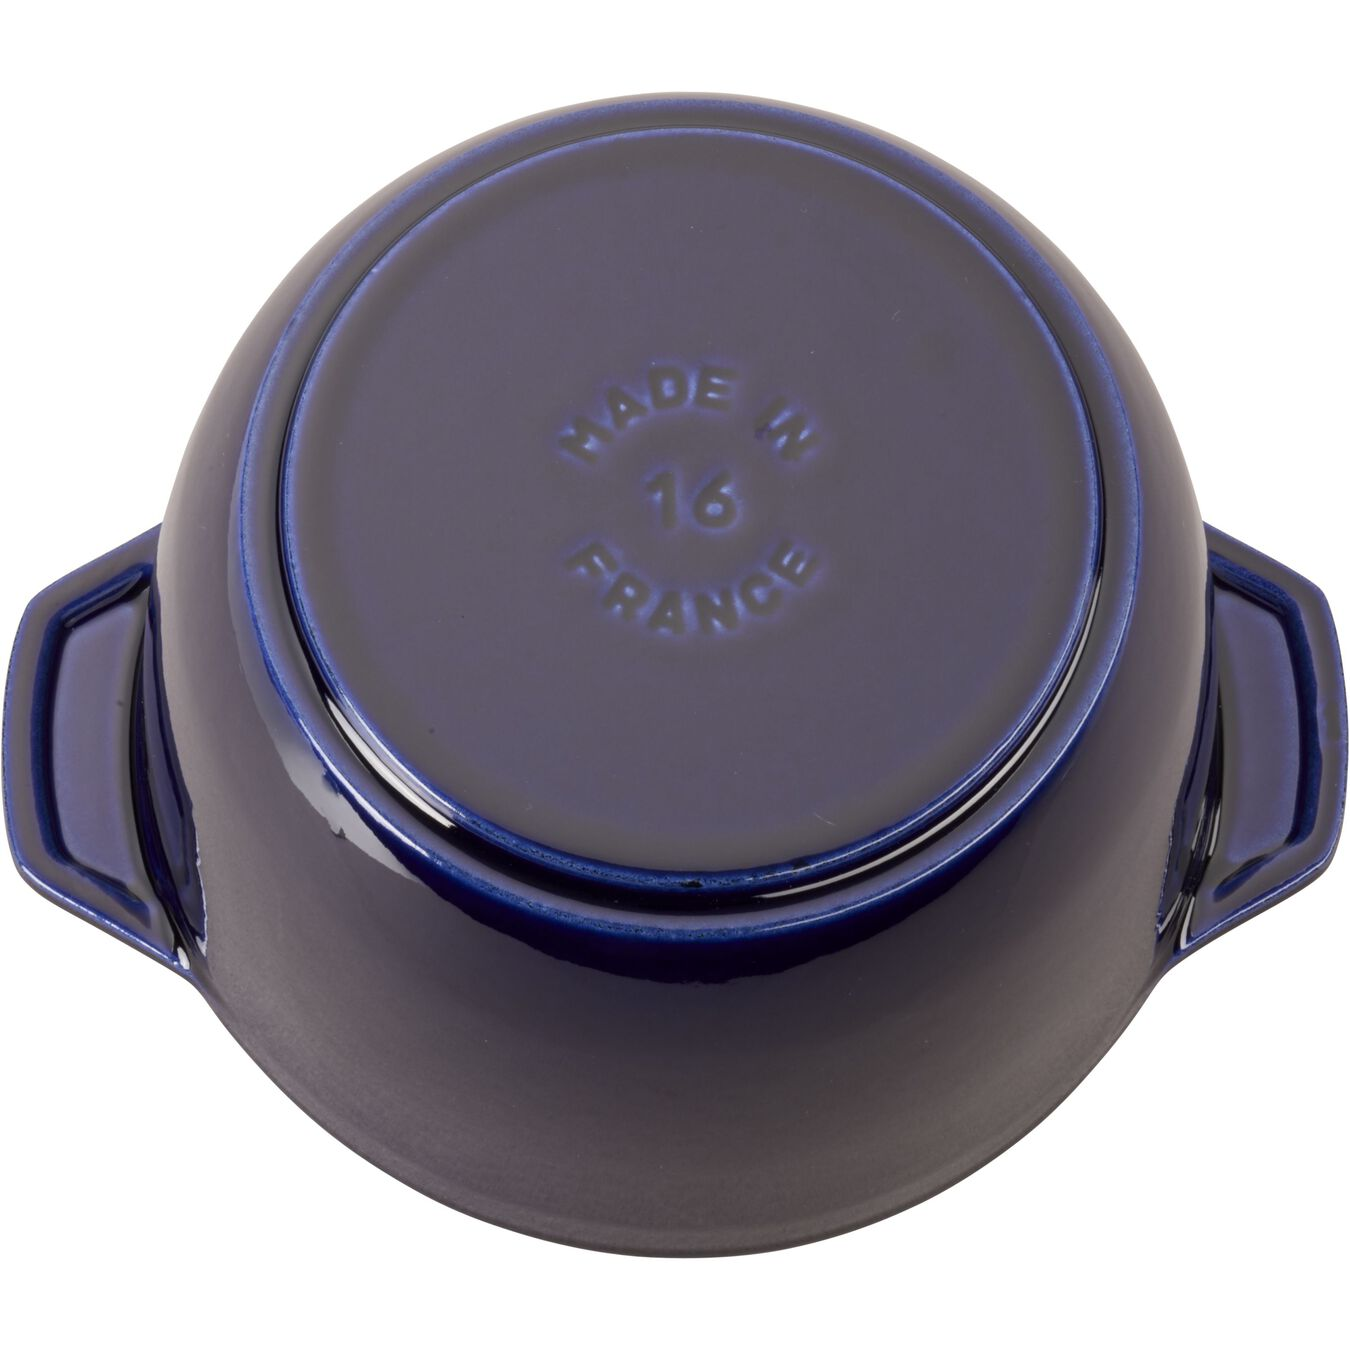 1.5 qt, Petite French Oven, dark blue,,large 2